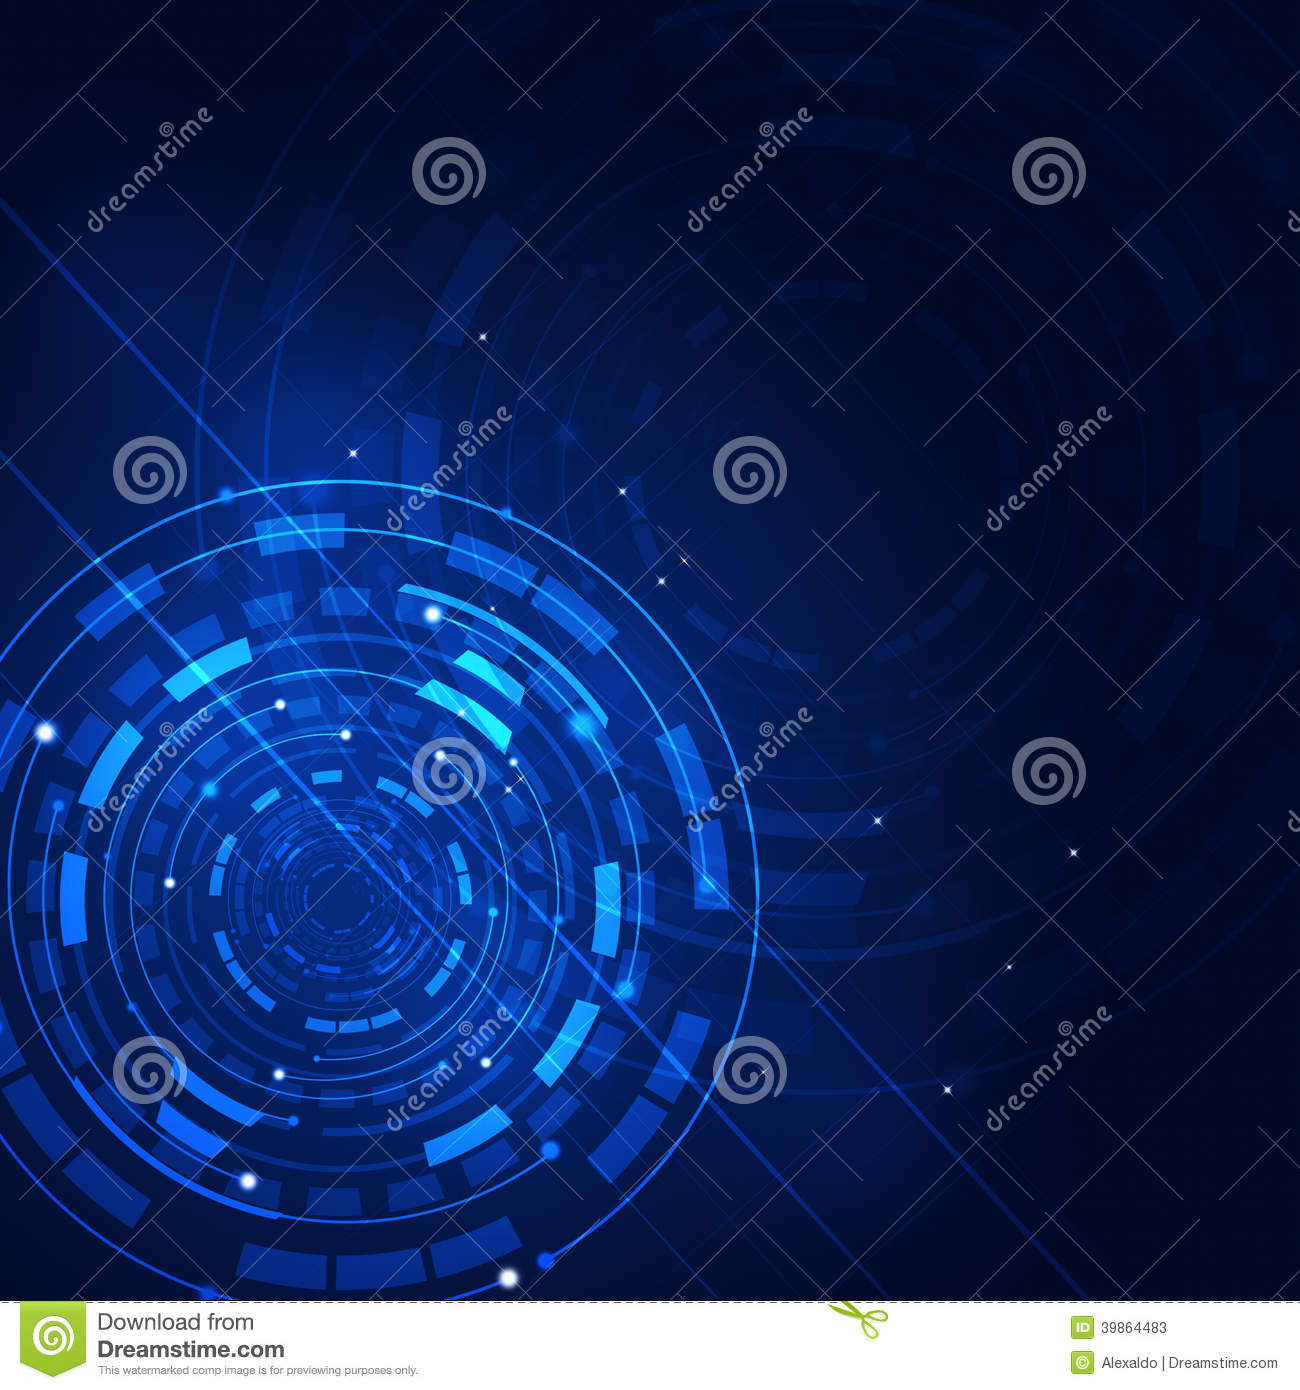 abstract background blur circle - photo #25